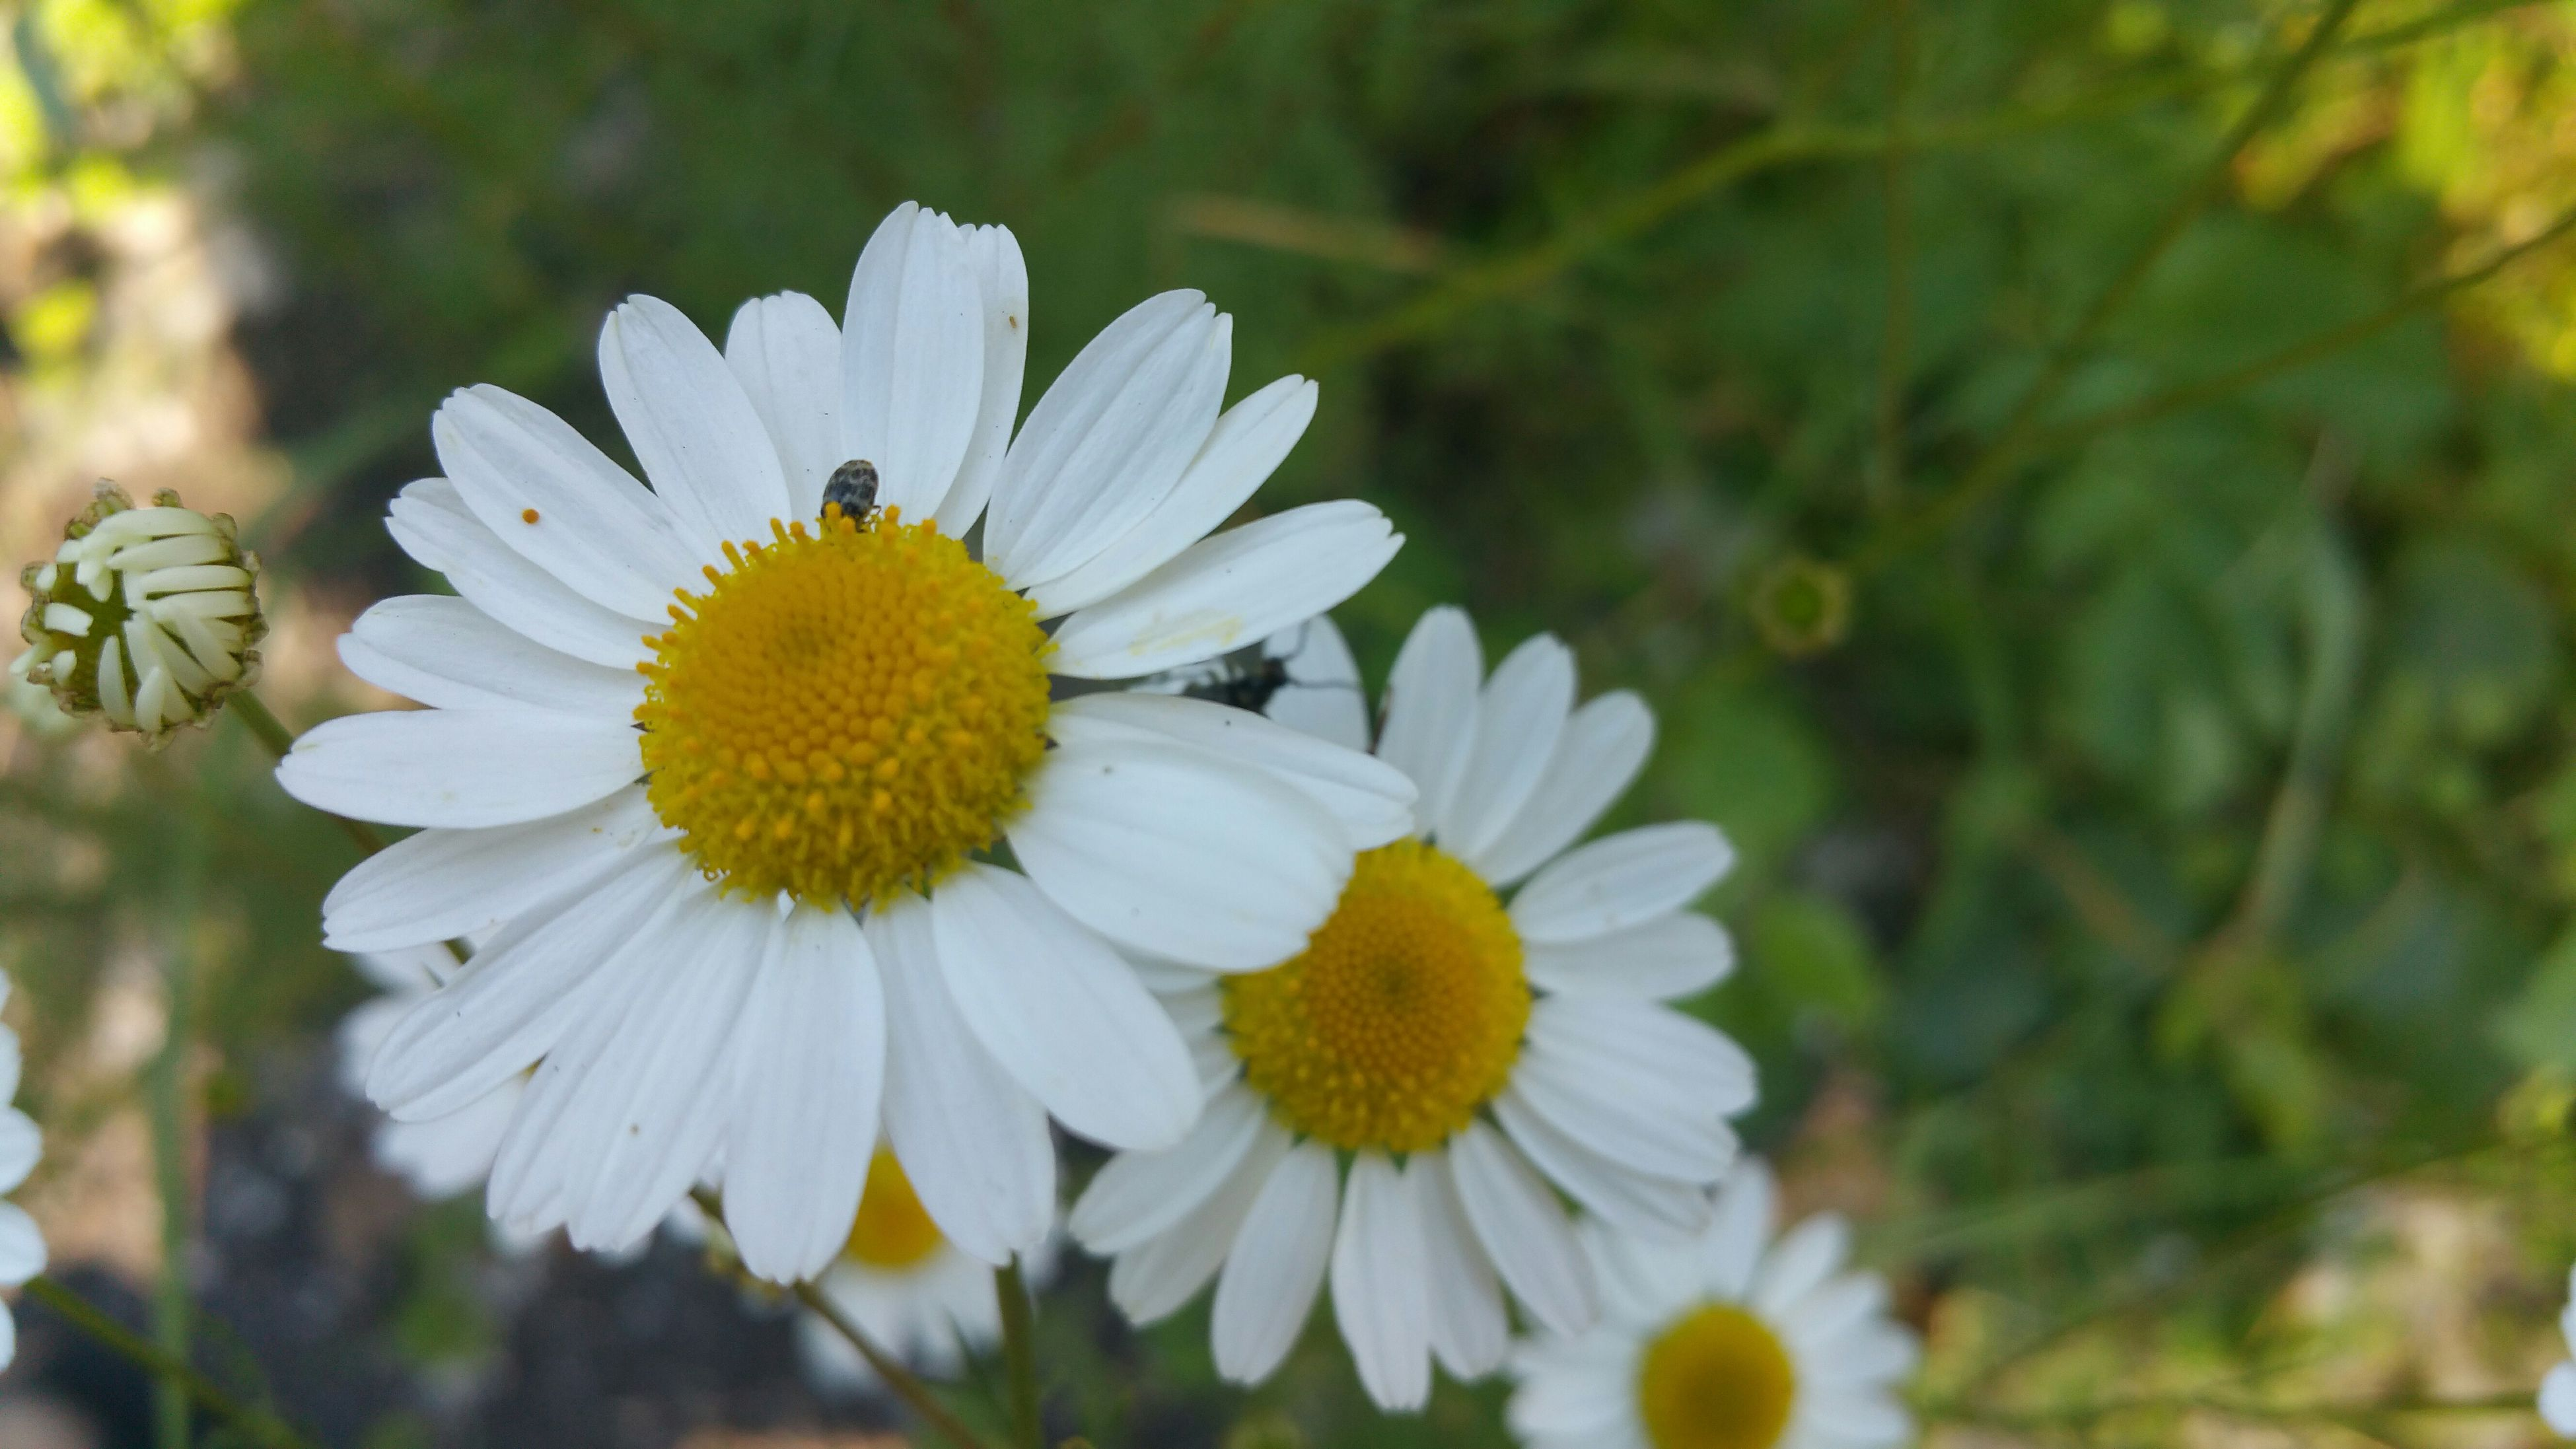 flower, petal, freshness, fragility, flower head, growth, focus on foreground, pollen, beauty in nature, blooming, white color, close-up, daisy, nature, yellow, plant, in bloom, outdoors, day, single flower